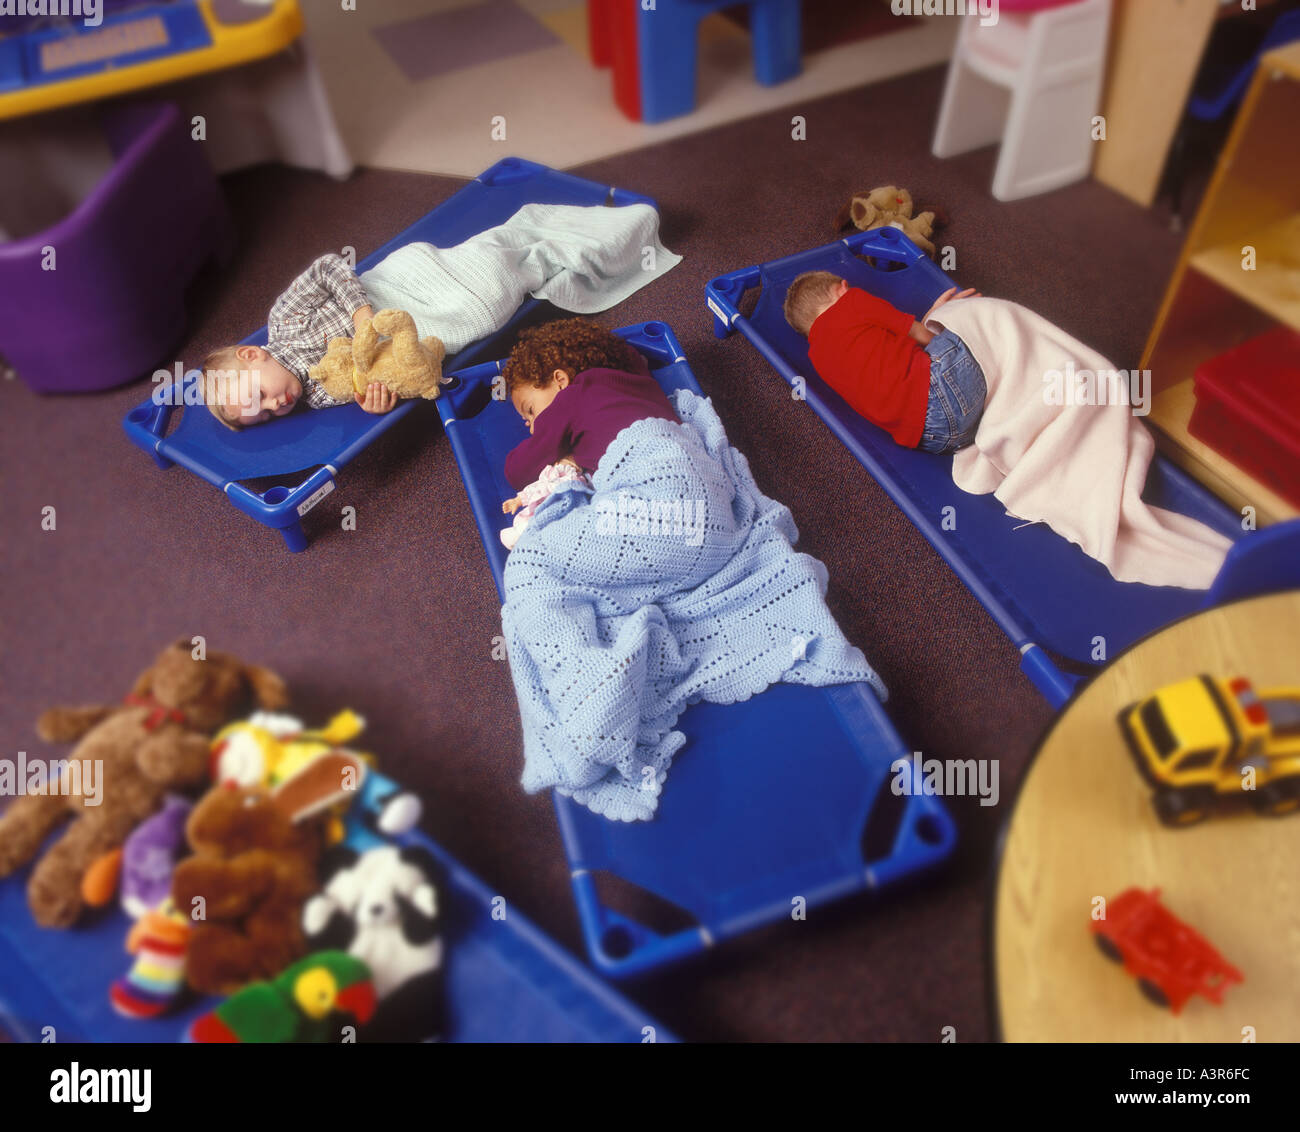 Children Sleeping On Floor Mats At A Daycare Center Stock Photo